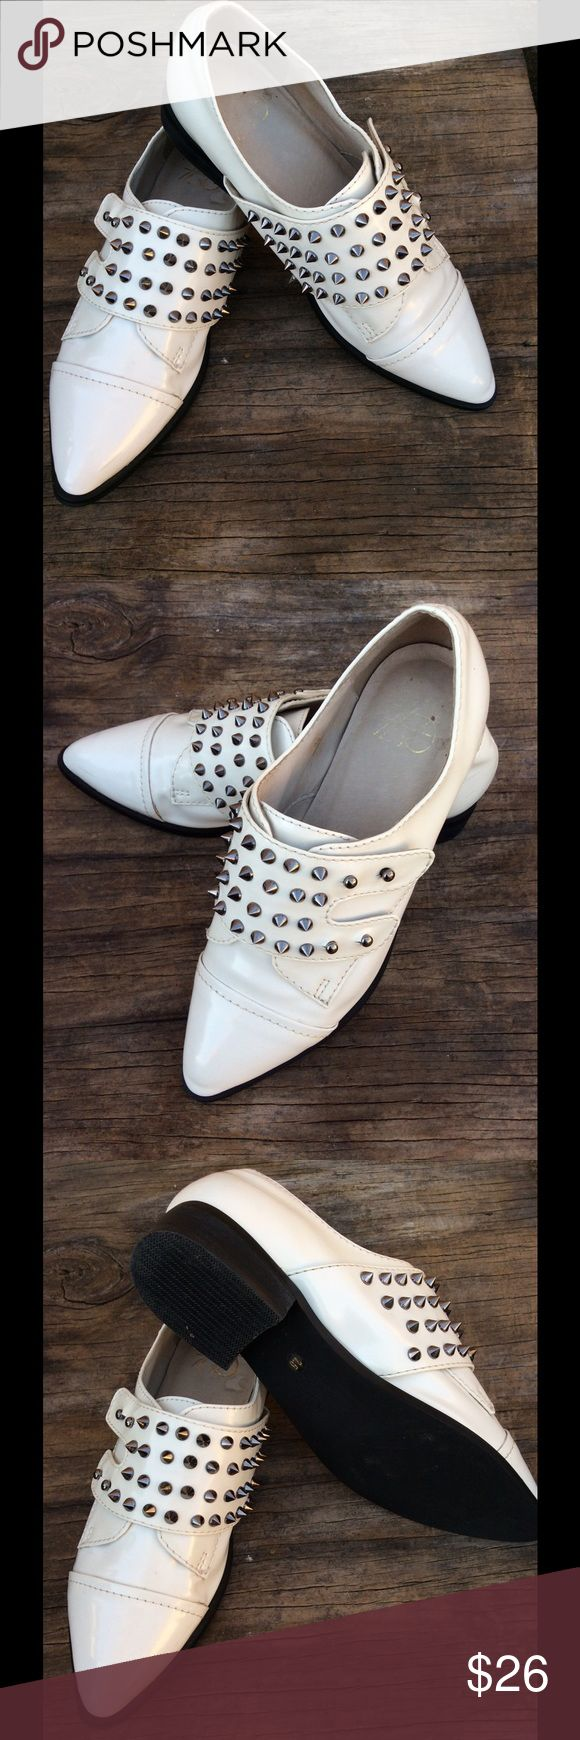 Yes Solestrucked Spiked Studded Loafer White patent leather with black sole...beautiful stainless steel studs decorating the top of the shoe! Yes Shoes Flats & Loafers